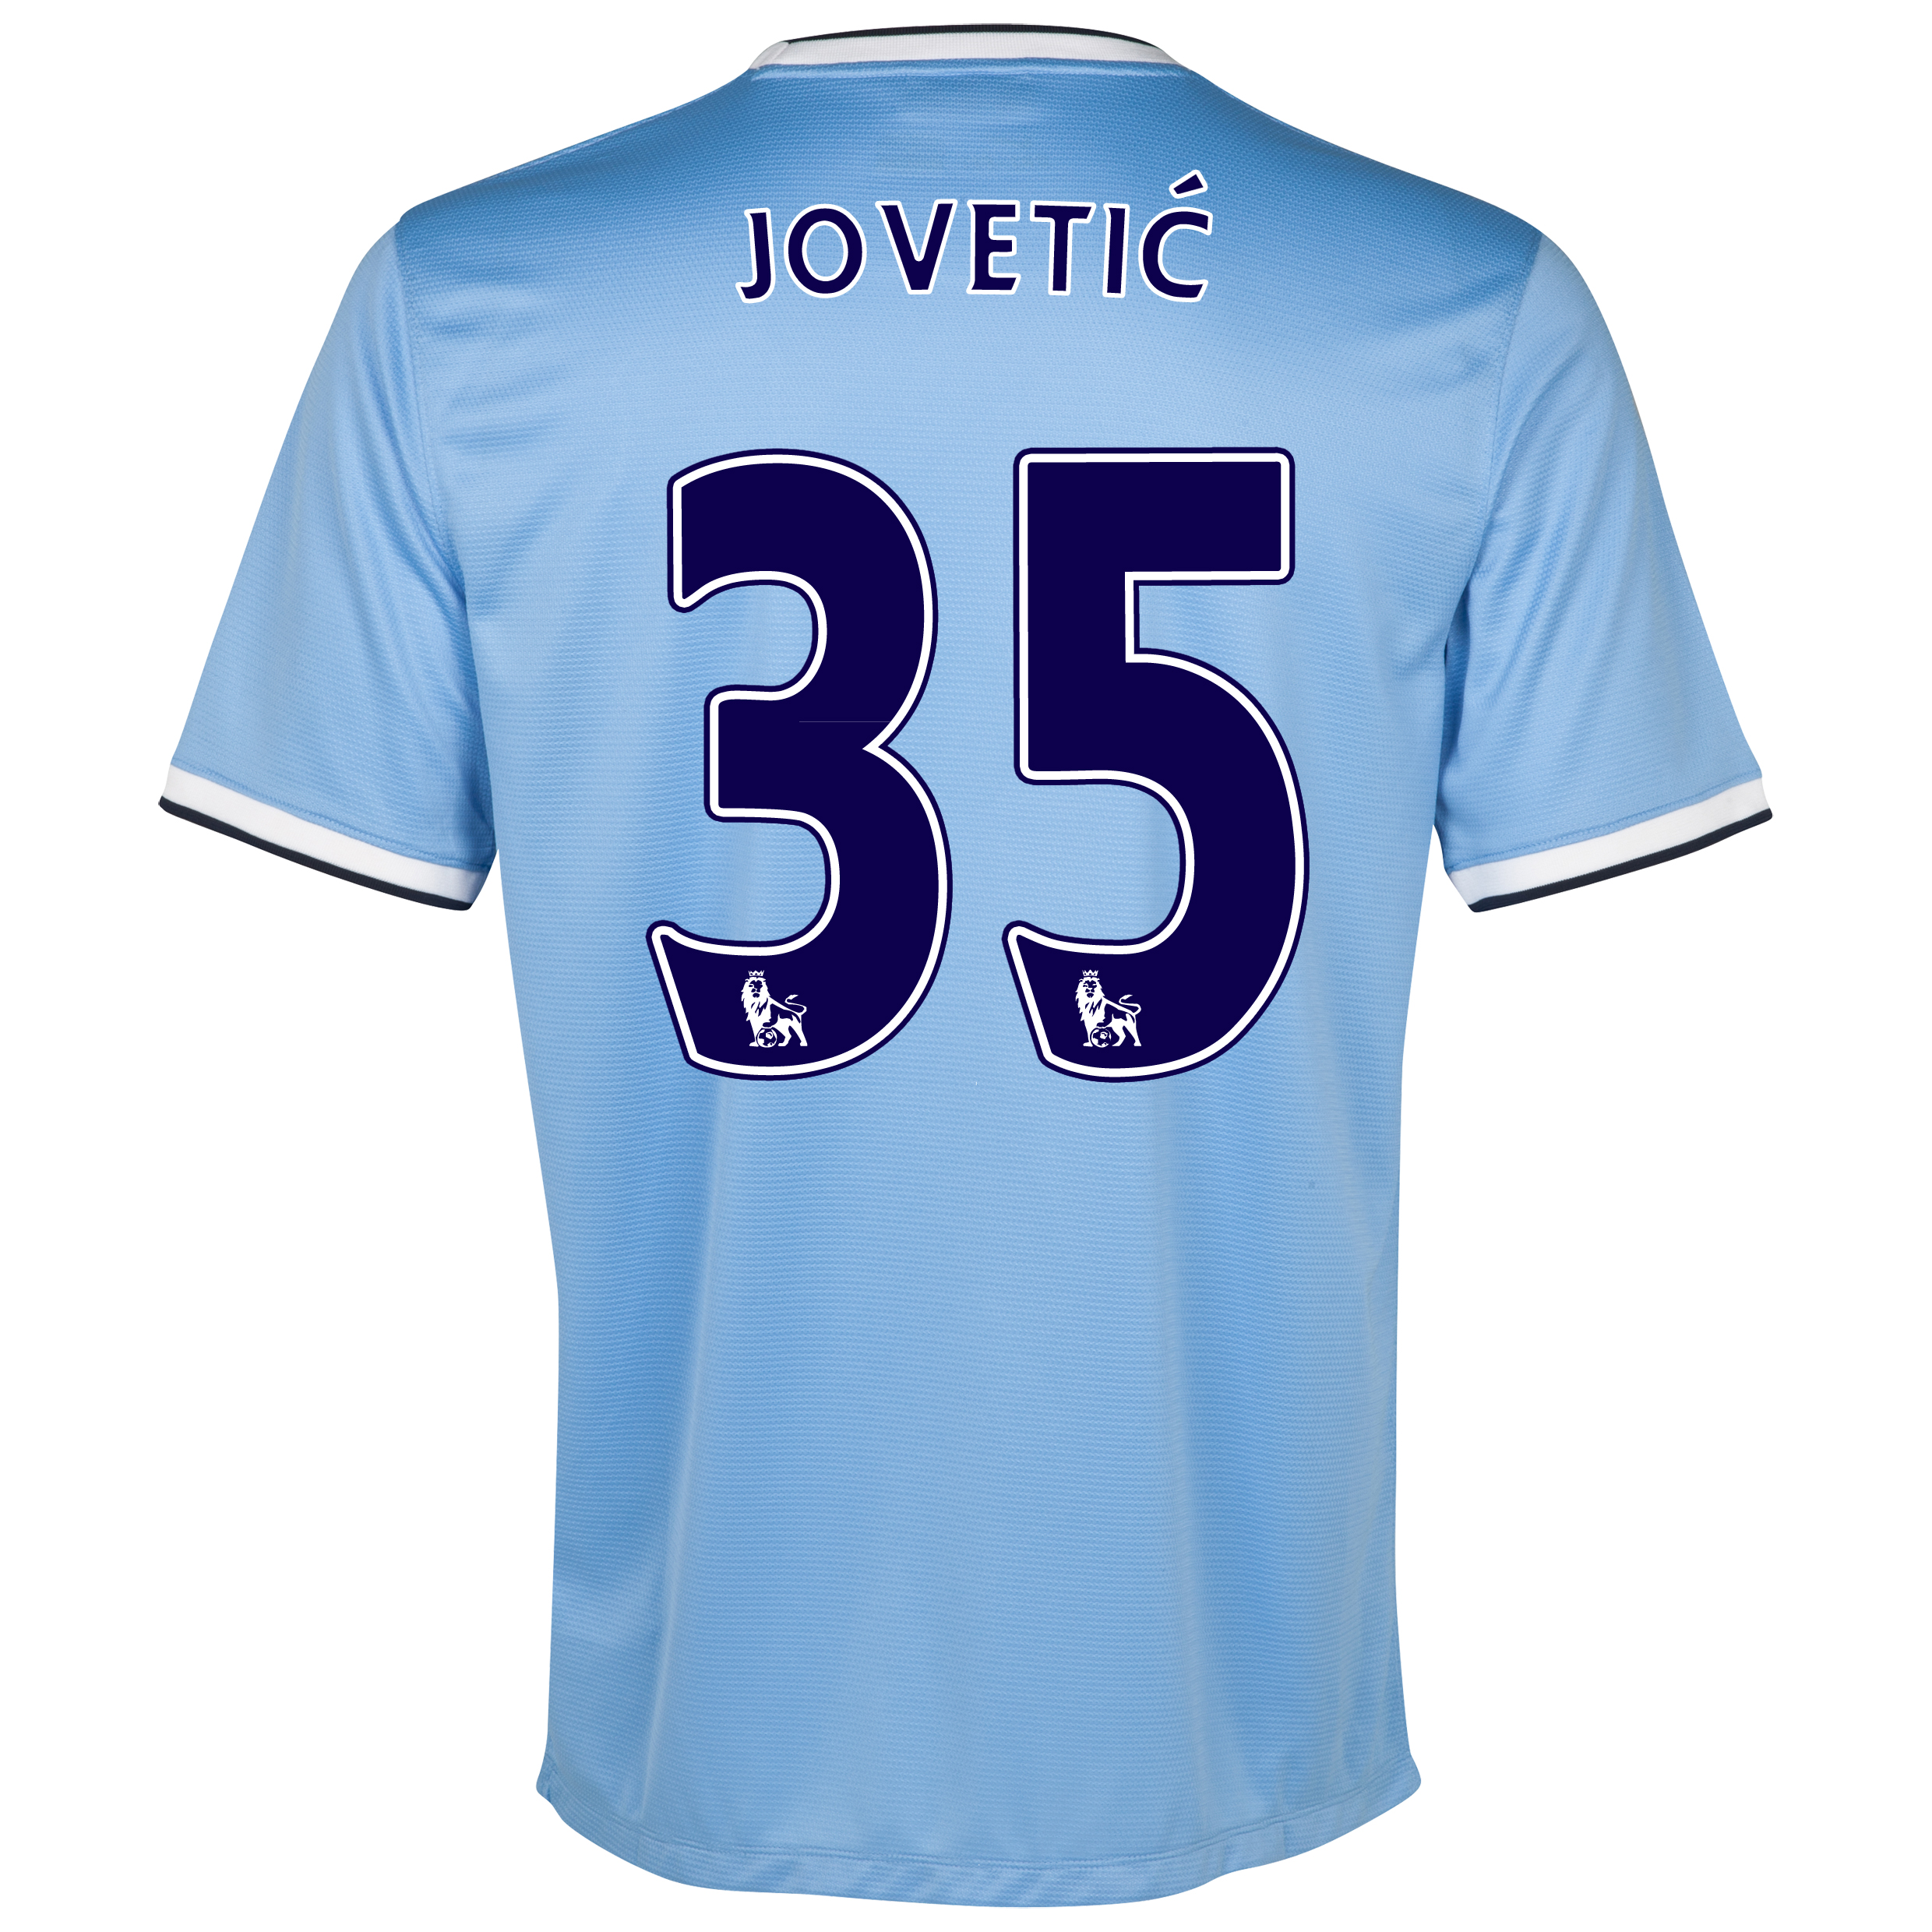 Manchester City Home Shirt 2013/14 with Jovetic 35 printing